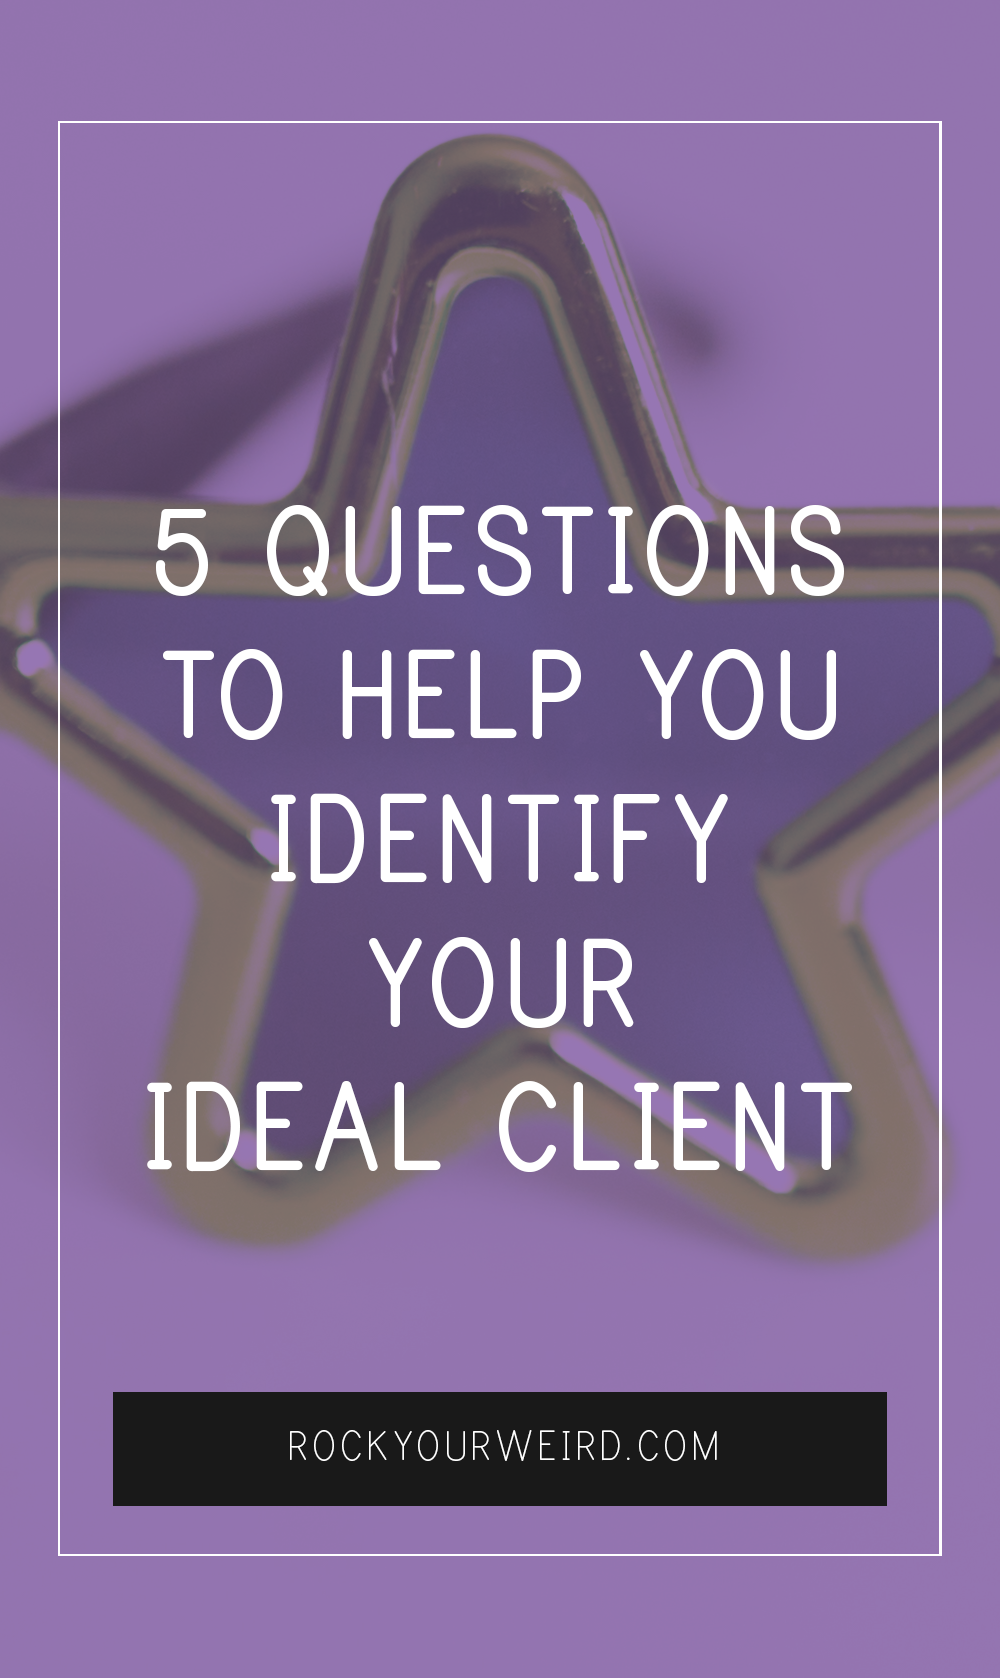 5 Questions to Help You Identify Your Ideal Client